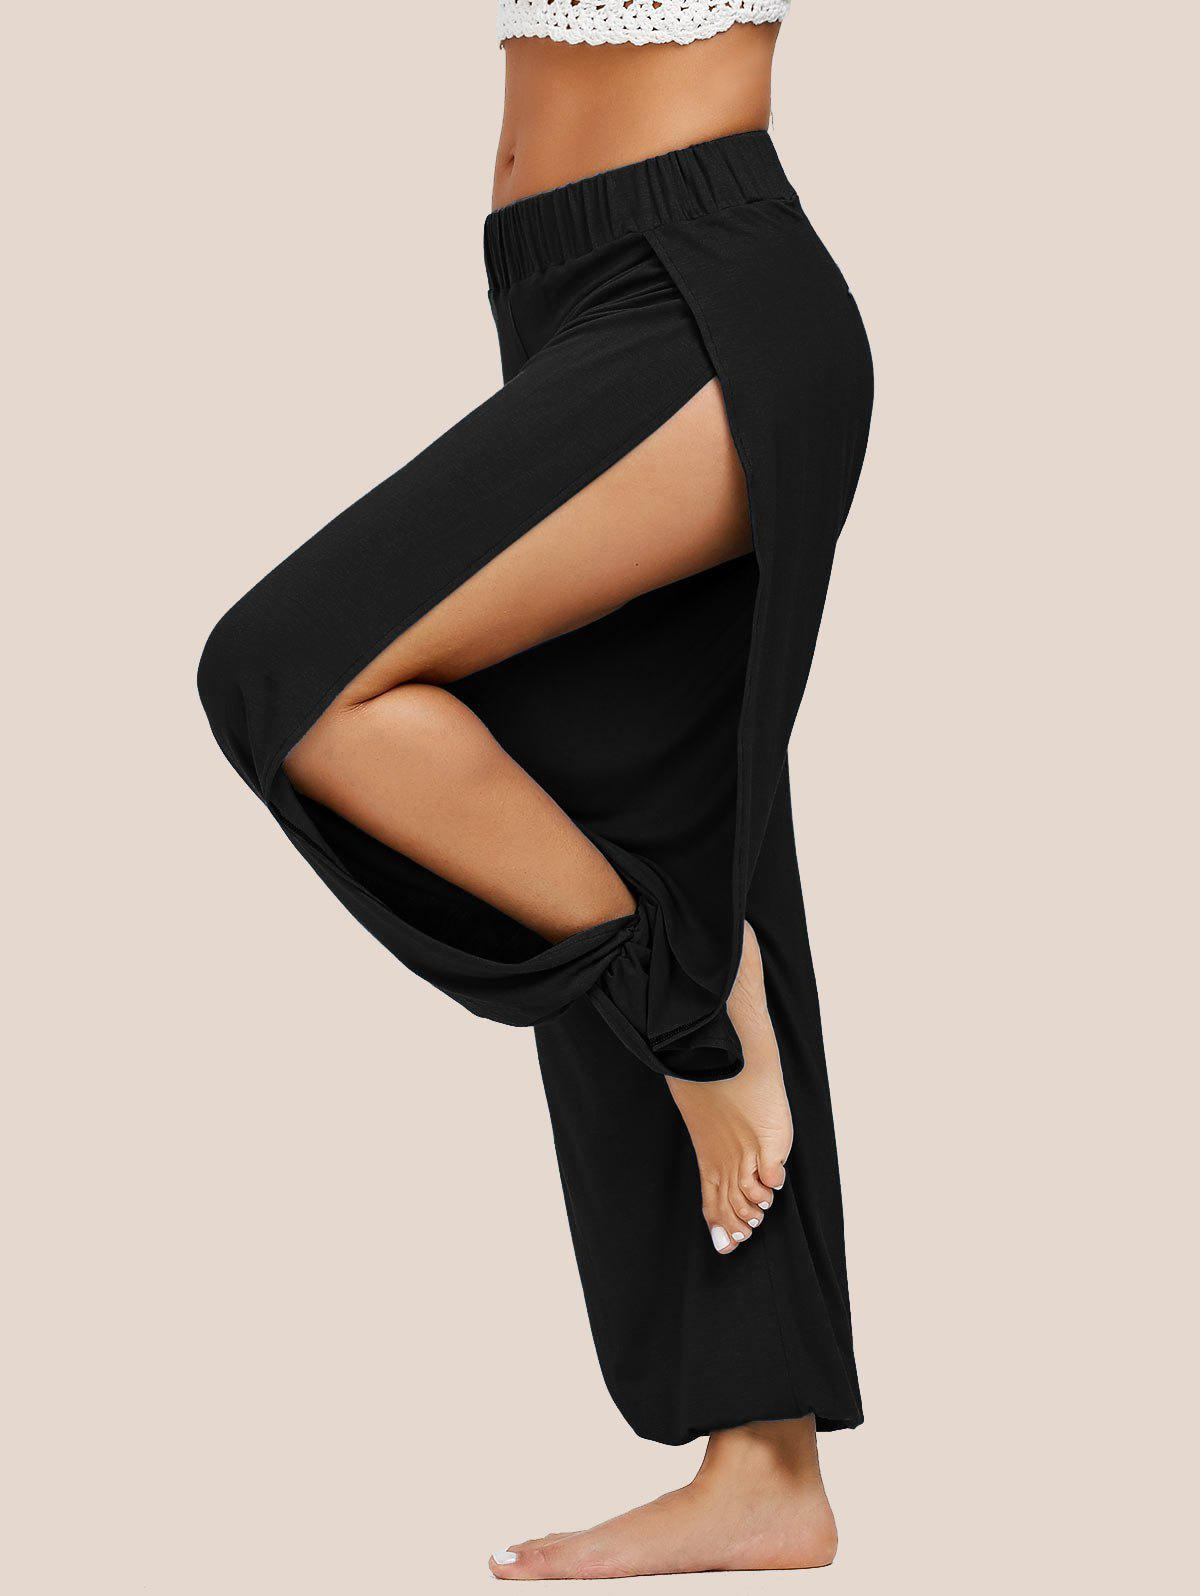 Elastic Waist High Slit Harem PantsWOMEN<br><br>Size: L; Color: BLACK; Style: Casual; Length: Normal; Material: Polyester; Fit Type: Loose; Waist Type: Mid; Closure Type: Elastic Waist; Pattern Type: Solid; Pant Style: Harem Pants; Weight: 0.3900kg; Package Contents: 1 x Pants;